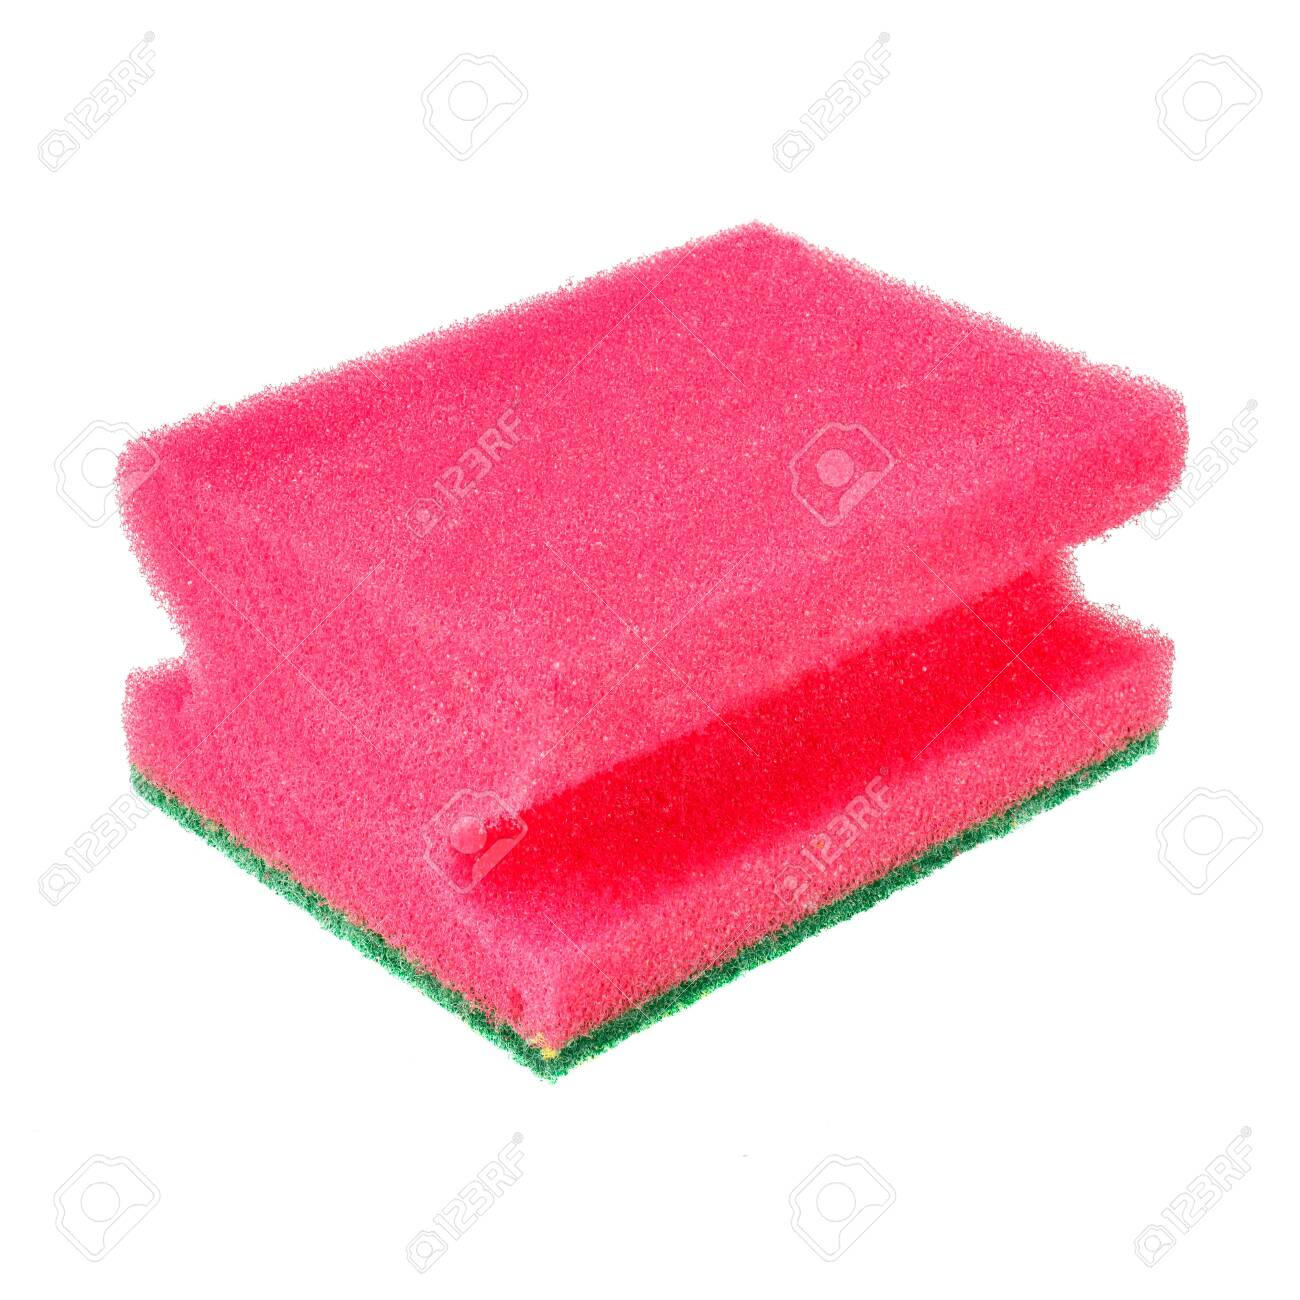 Pink foam rubber sponge for washing dishes isolated on white background - 140825943